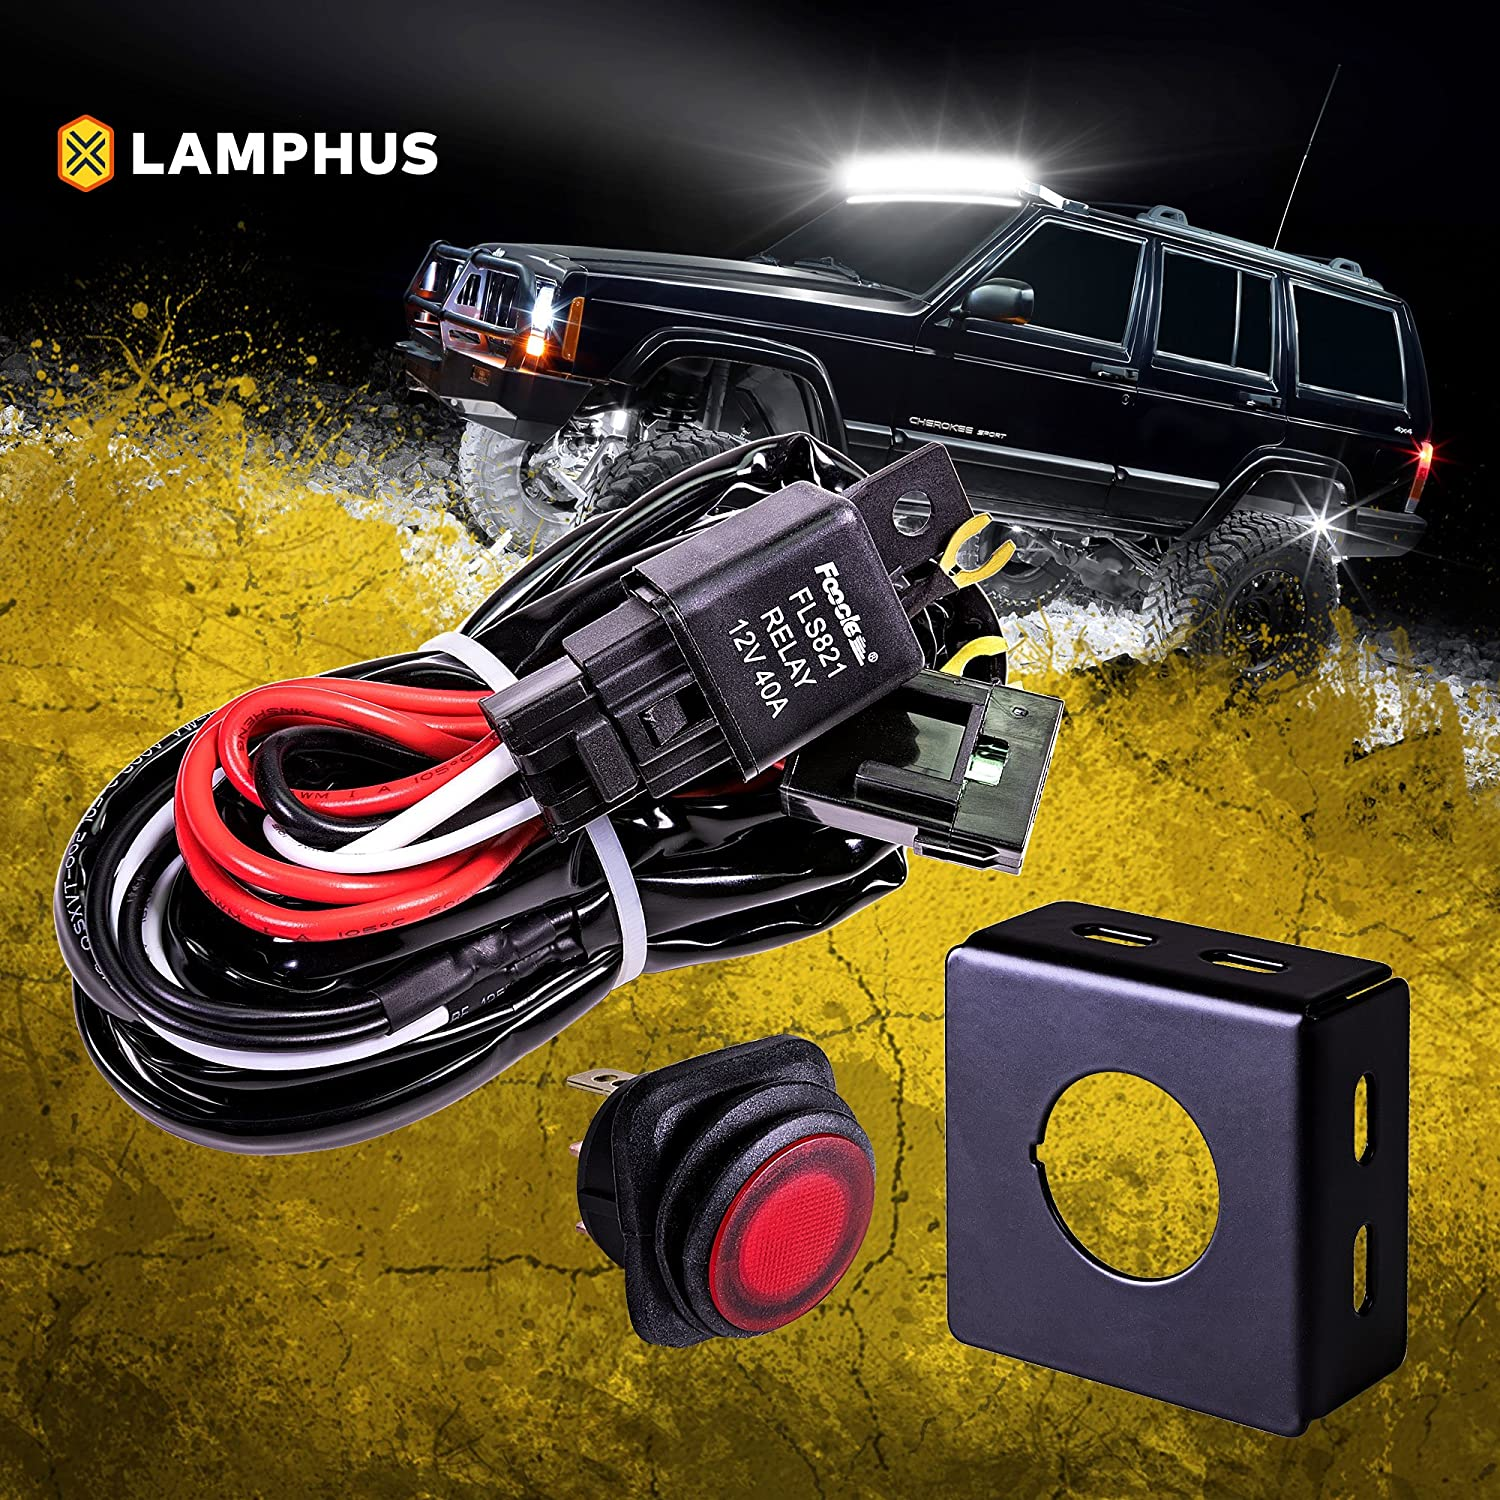 Lamphus 13 Off Road Atv Jeep Led Light Bar Wiring Harness Kit Mounting Bracket Waterproof